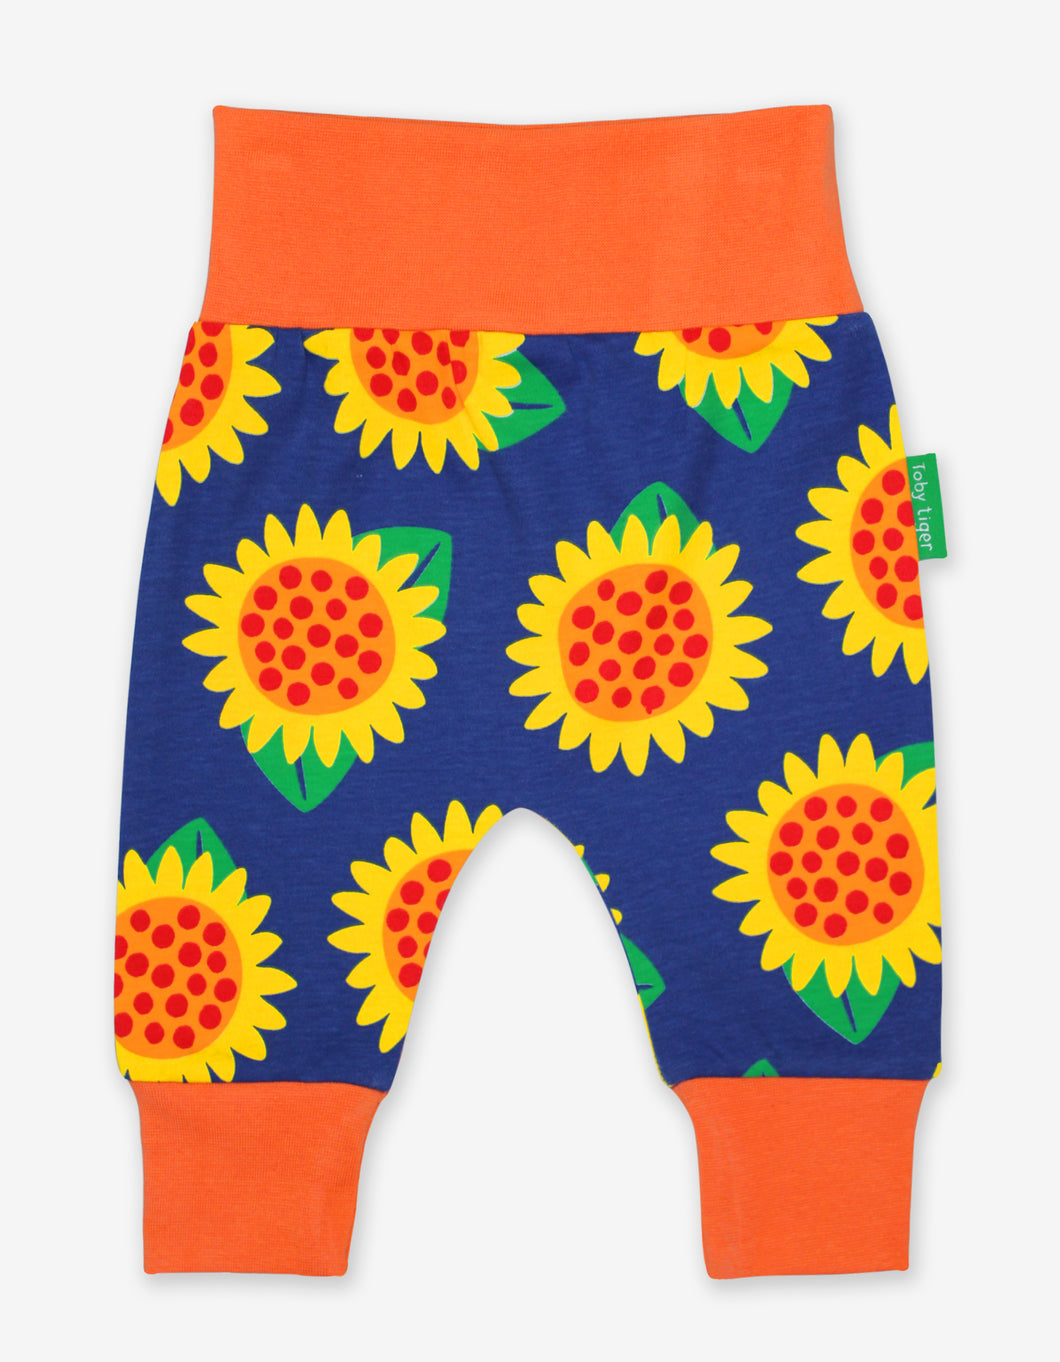 Organic Sunflower Yoga Pants